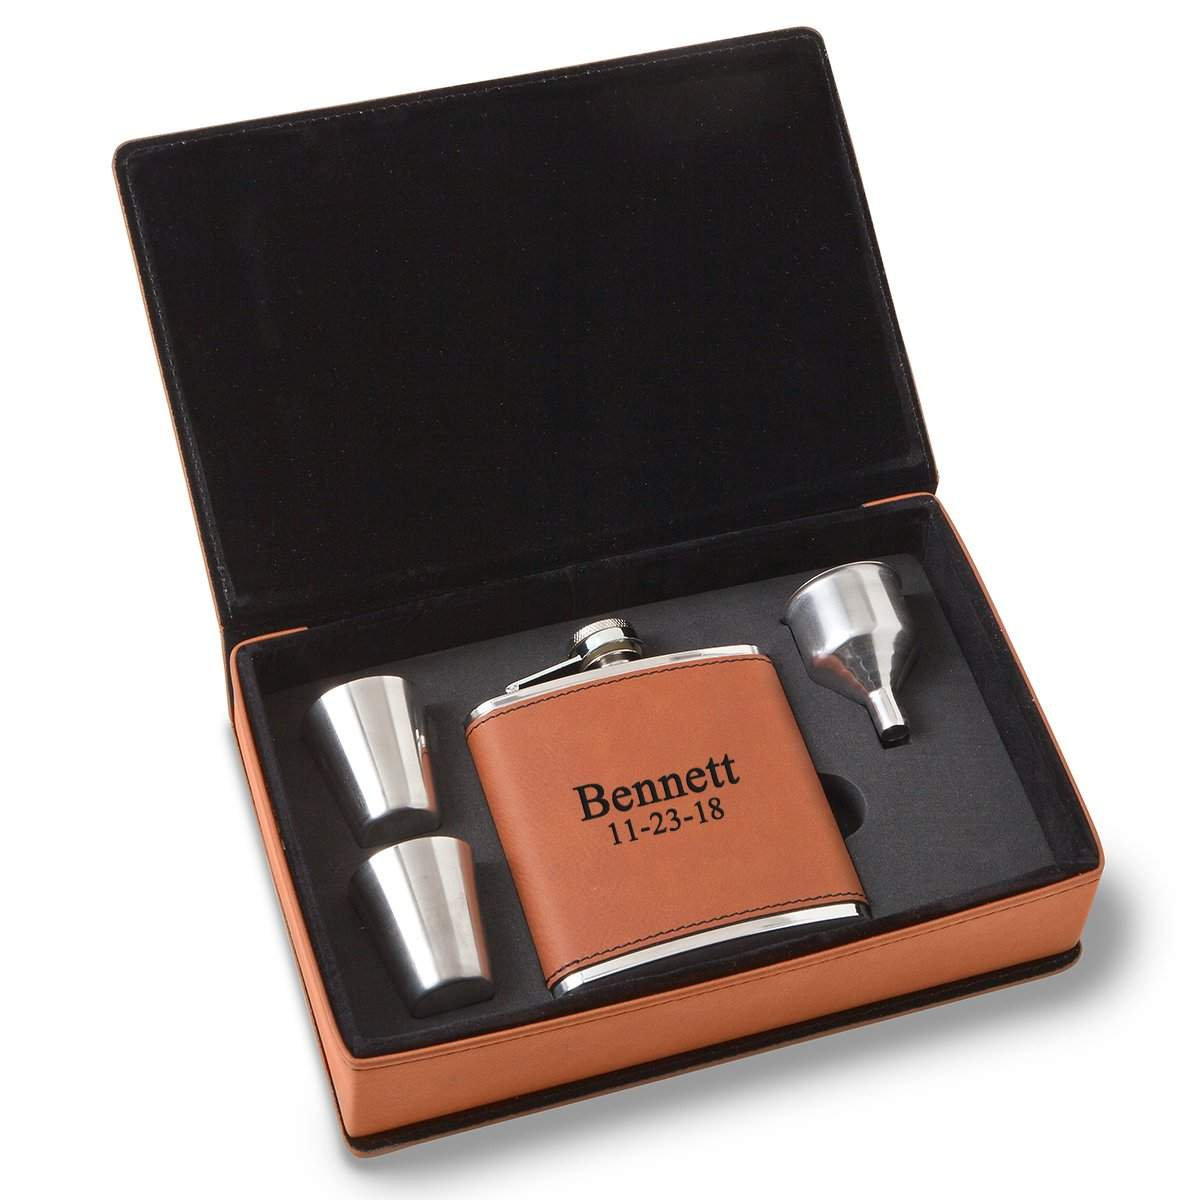 Personalized-6-oz-Rawhide-Flask-Gift-Set